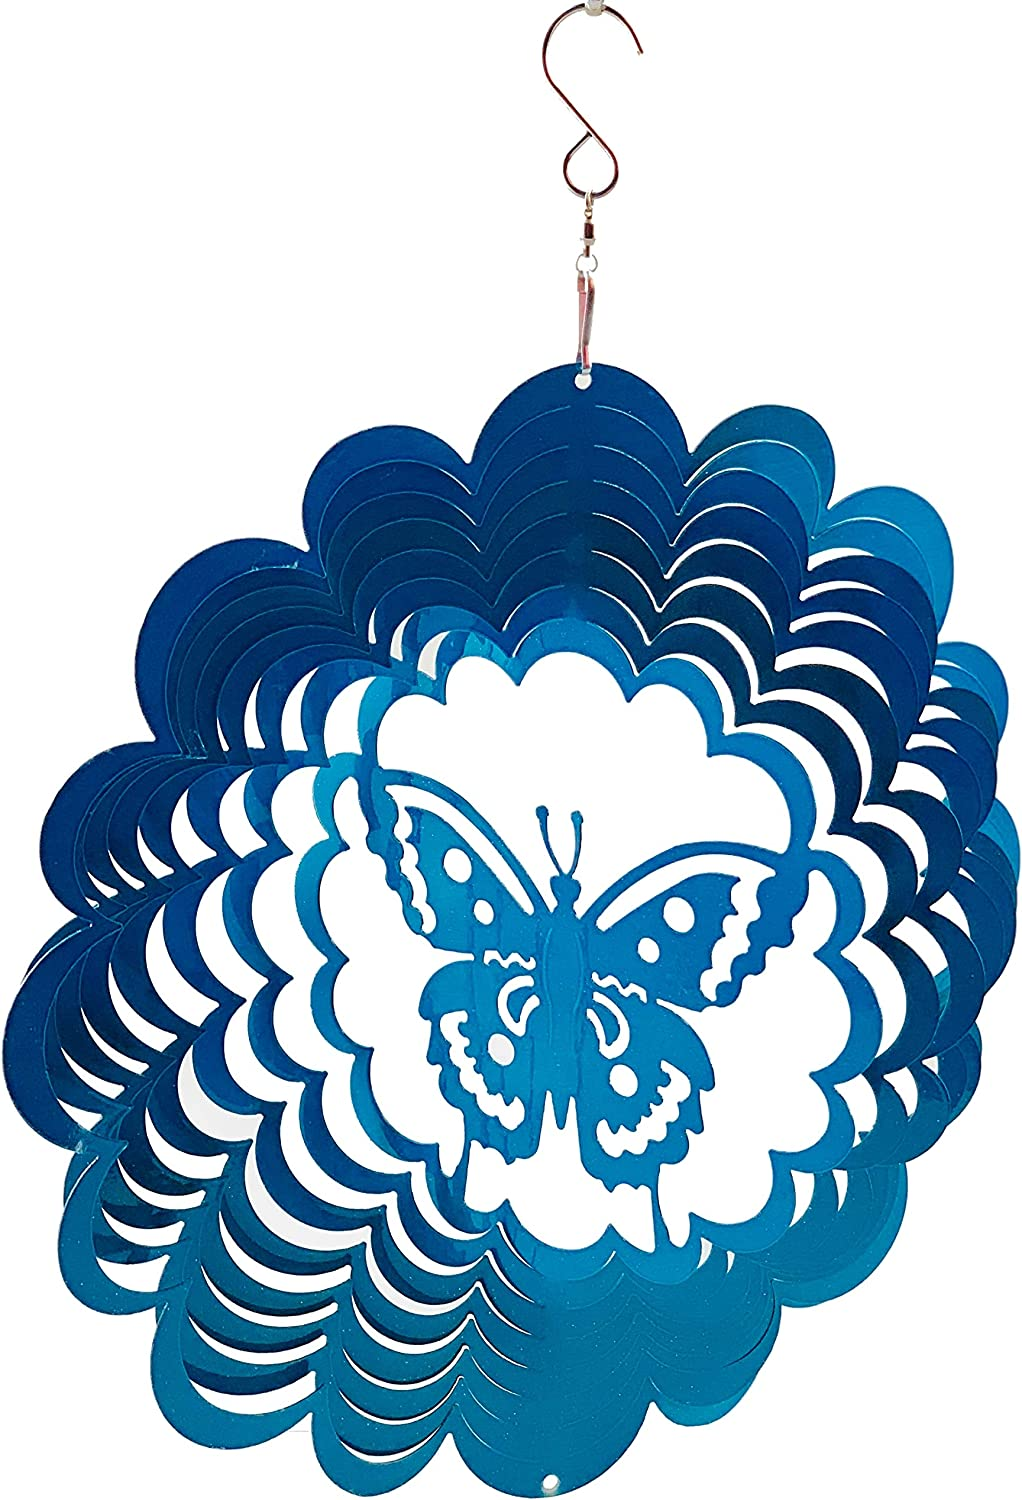 Dundee Deco W1204 Wind Spinner in Gift Box - 3D Hanging Indoor Outdoor Yard Garden Decoration - Mandala - Butterfly - Blue - 12 inch - Unique Gift Idea for Men Women, Souvenir, Present